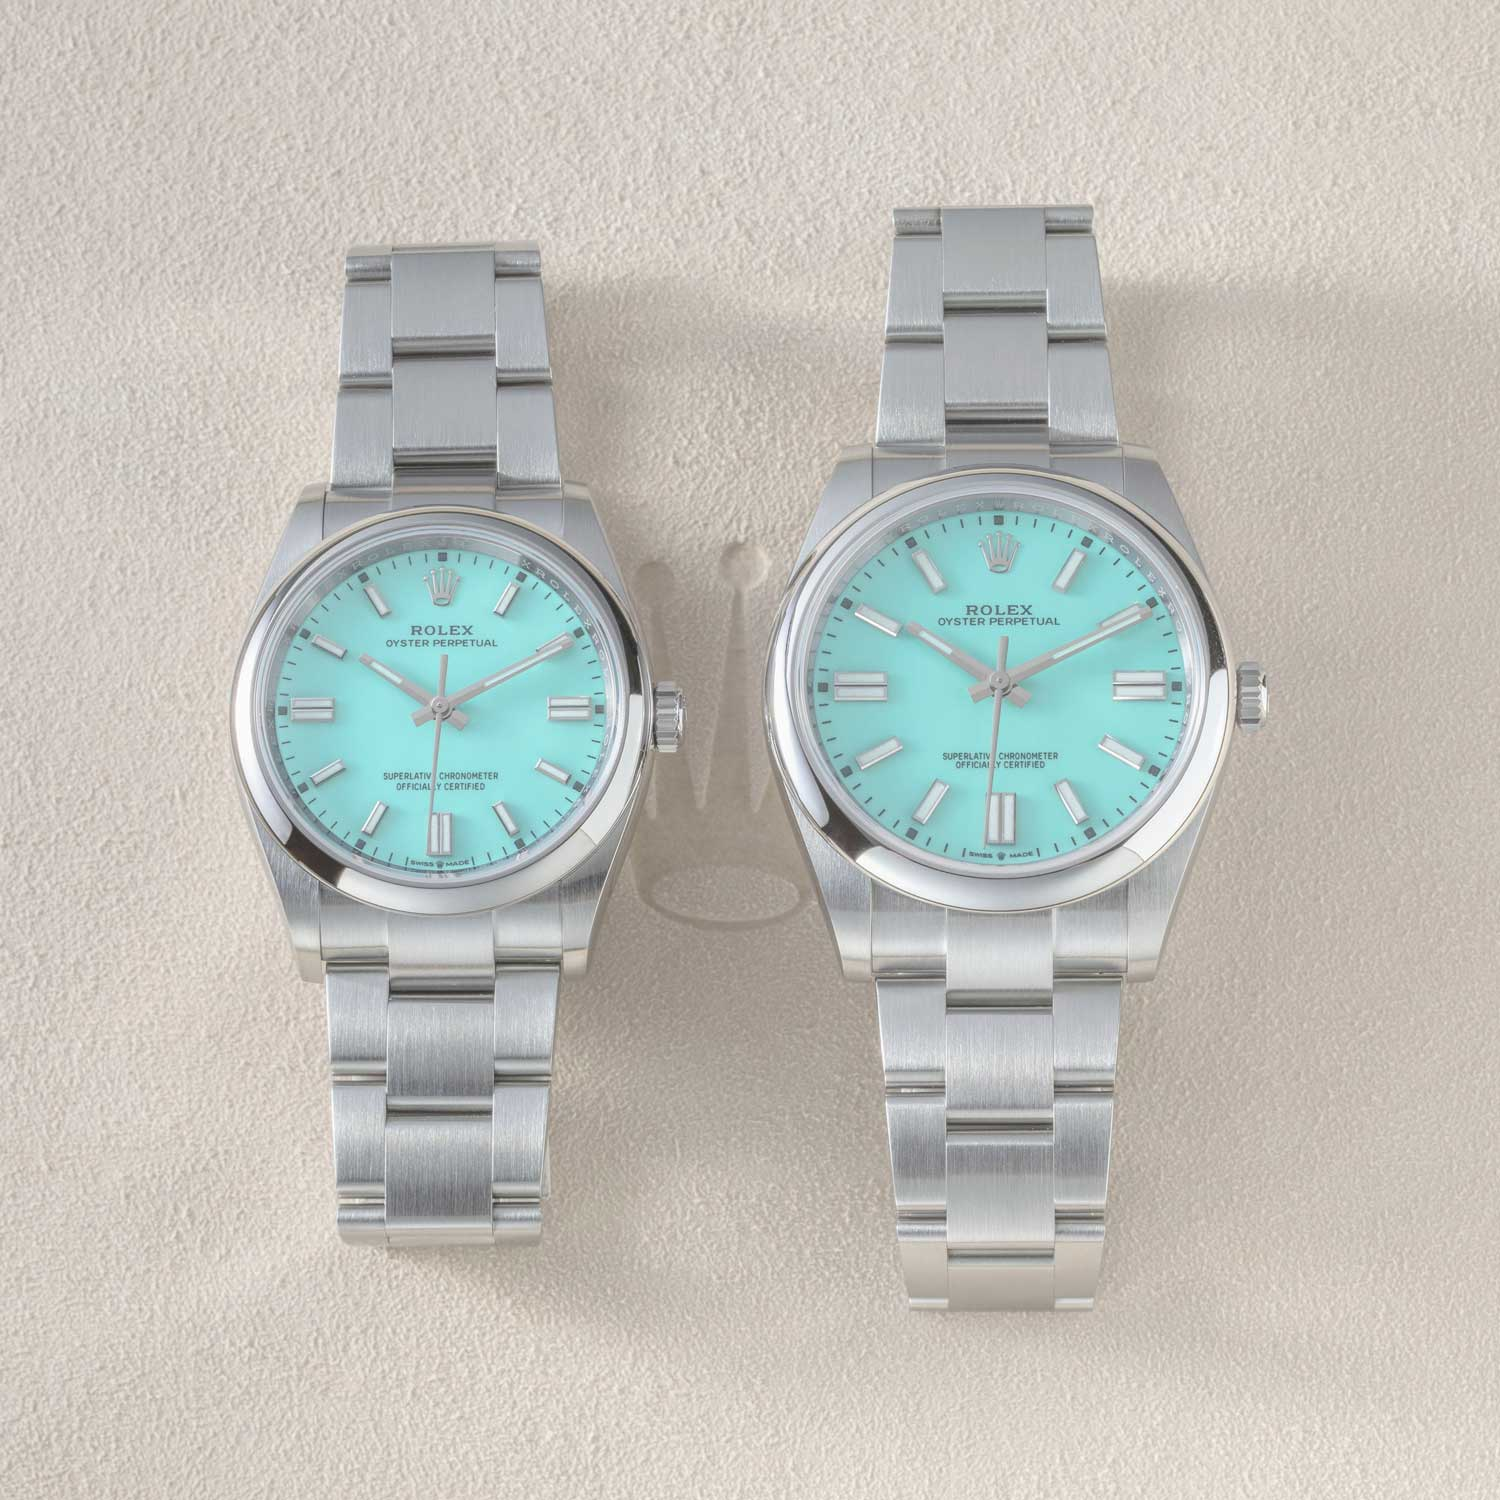 The 36mm and 41mm sizes of the 2020 Rolex Oyster Perpetual side-by-side, seen here with the much spoken of turquoise dial (©Revolution)